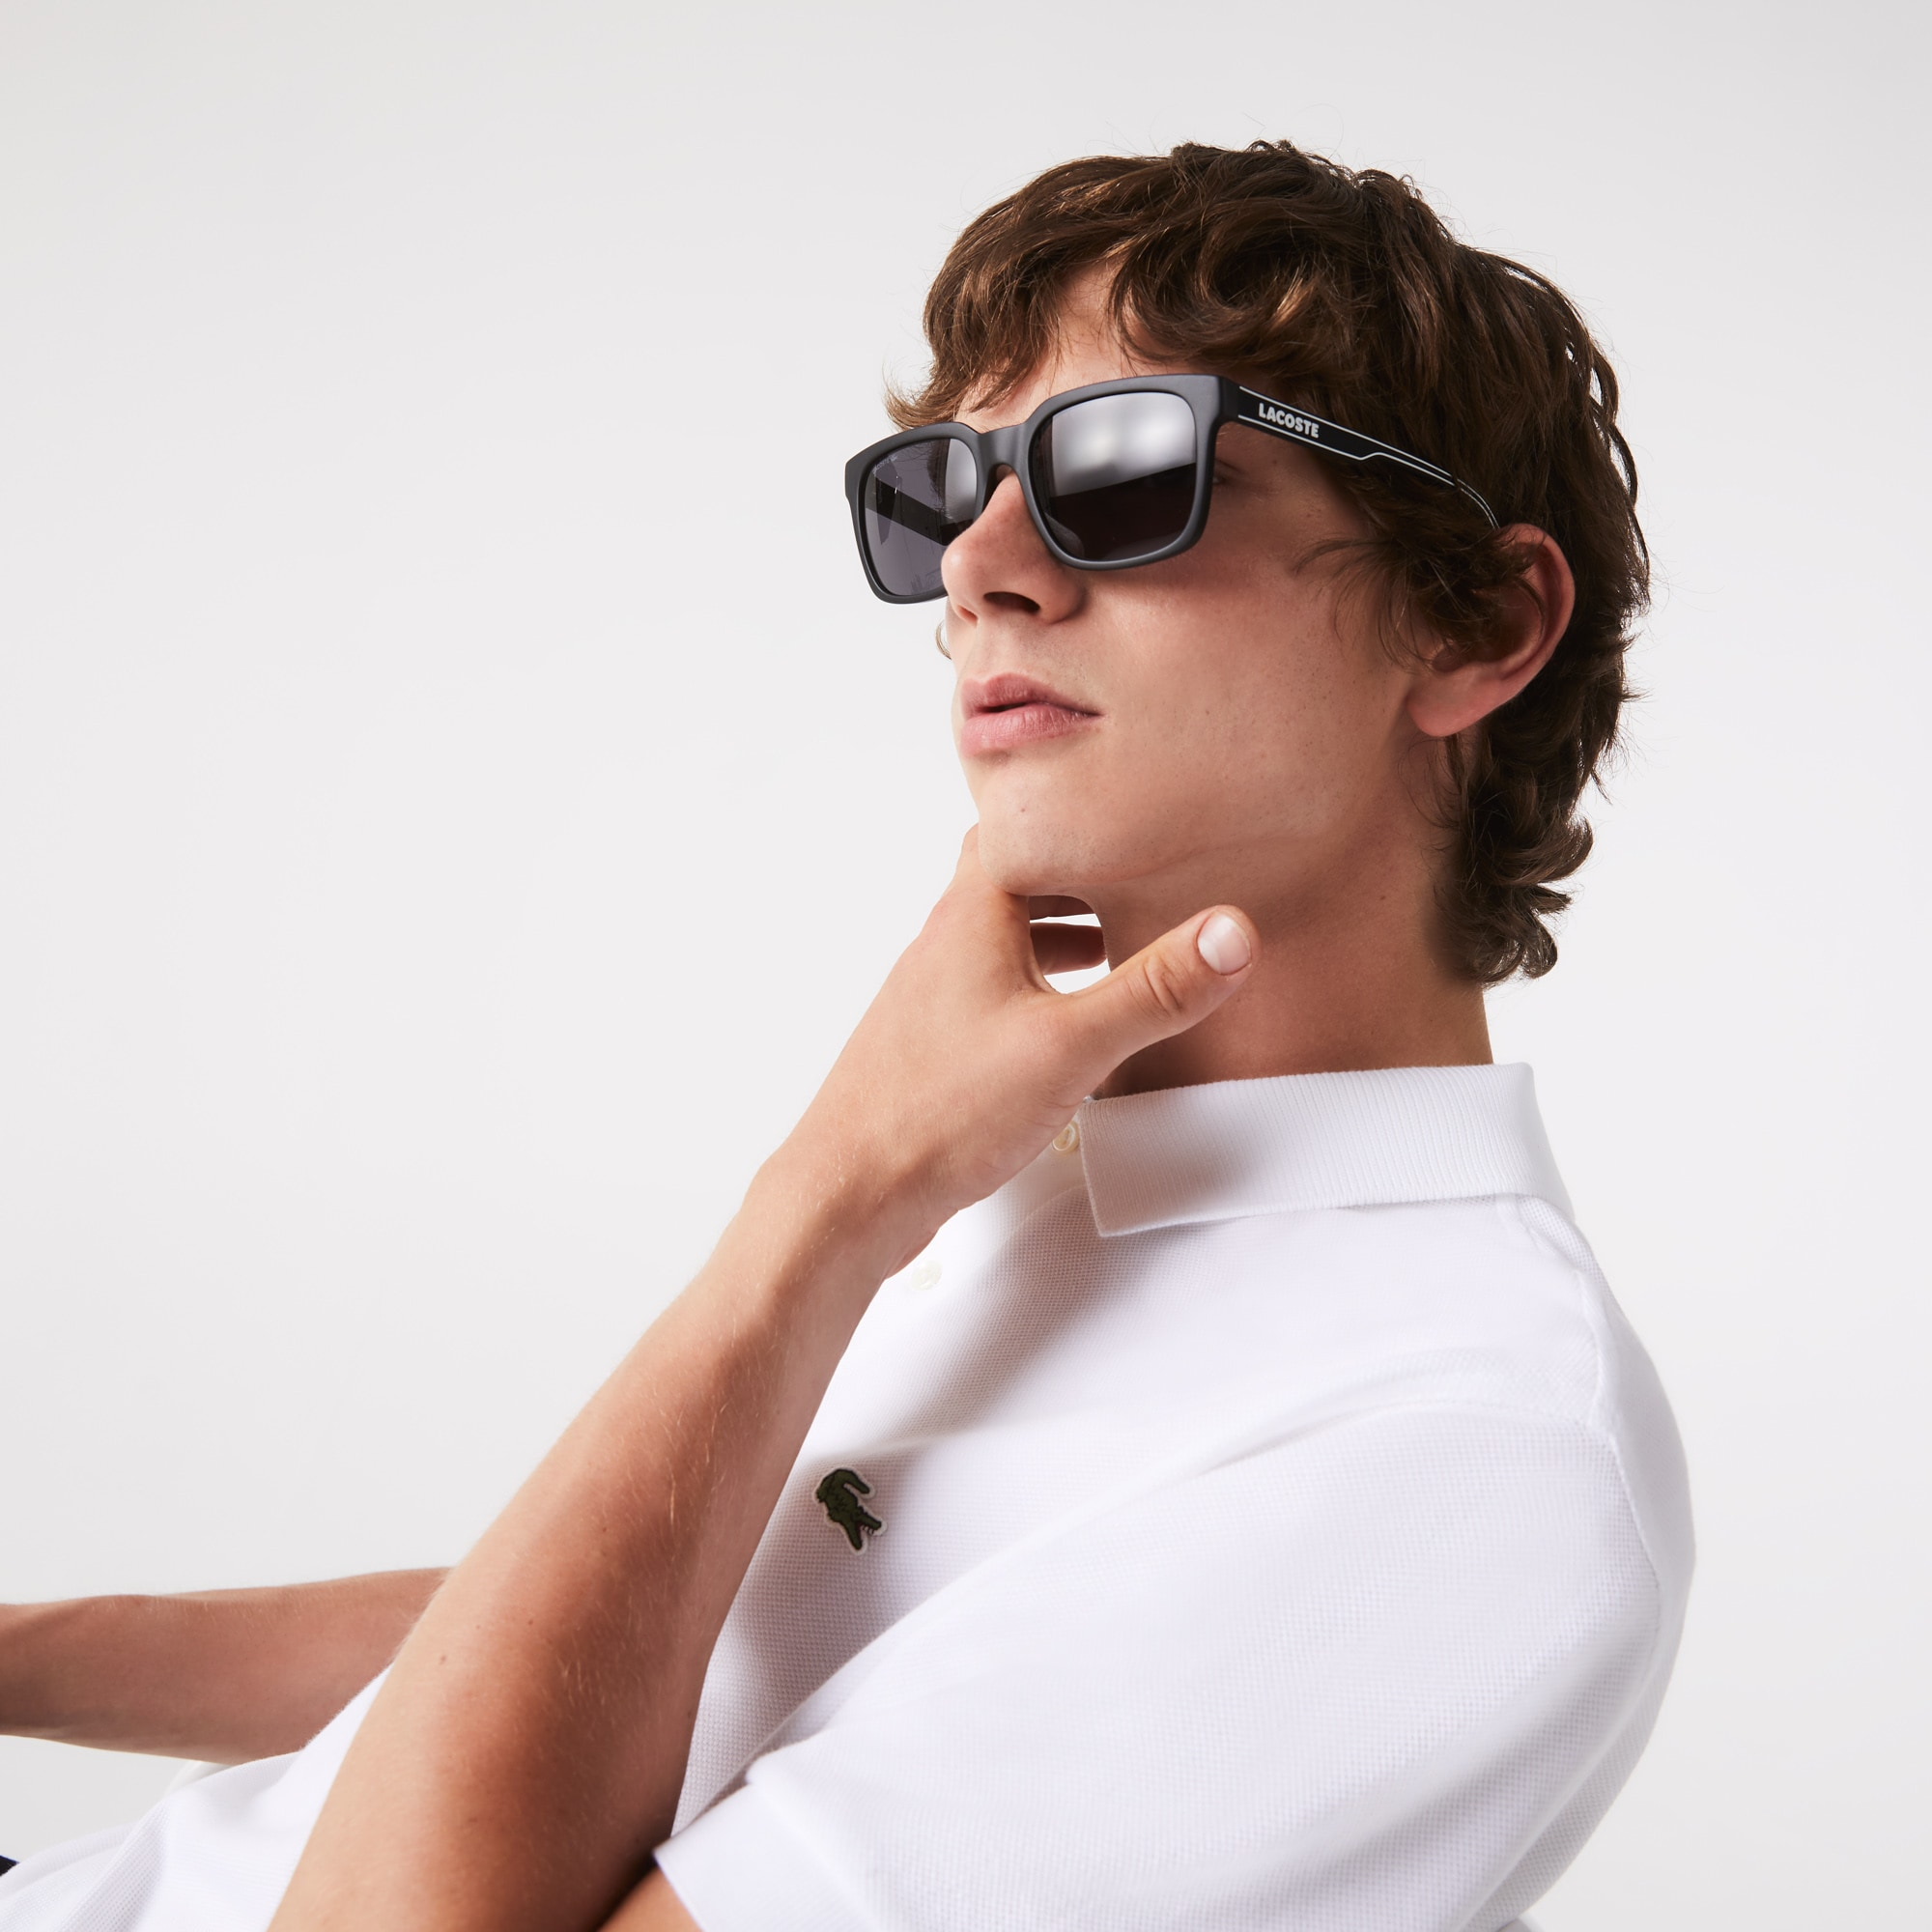 18cfe330ba Men s Plastic Square L.12.12 Sunglasses